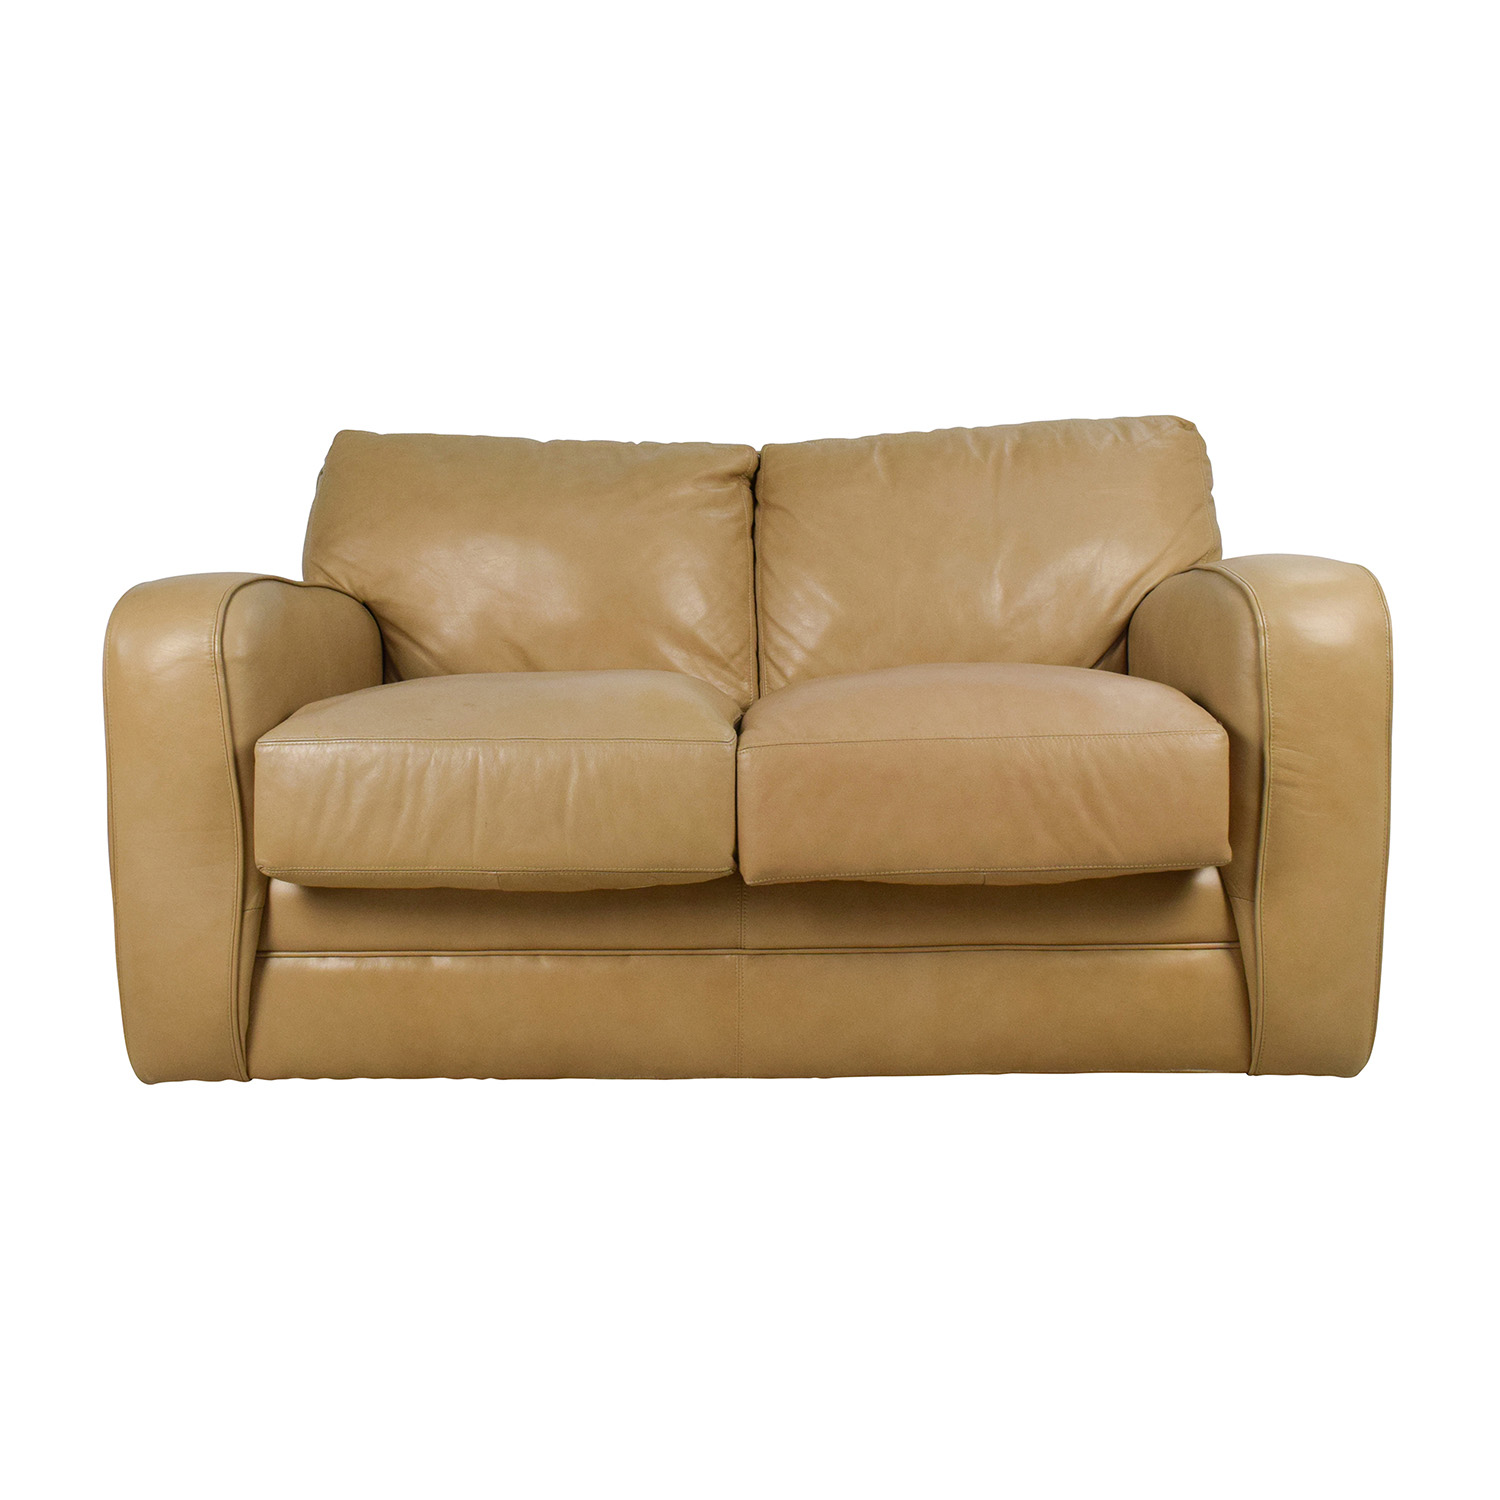 used loveseats 28 images used loveseats 28 images sofa used used sofa for 46 sofa used